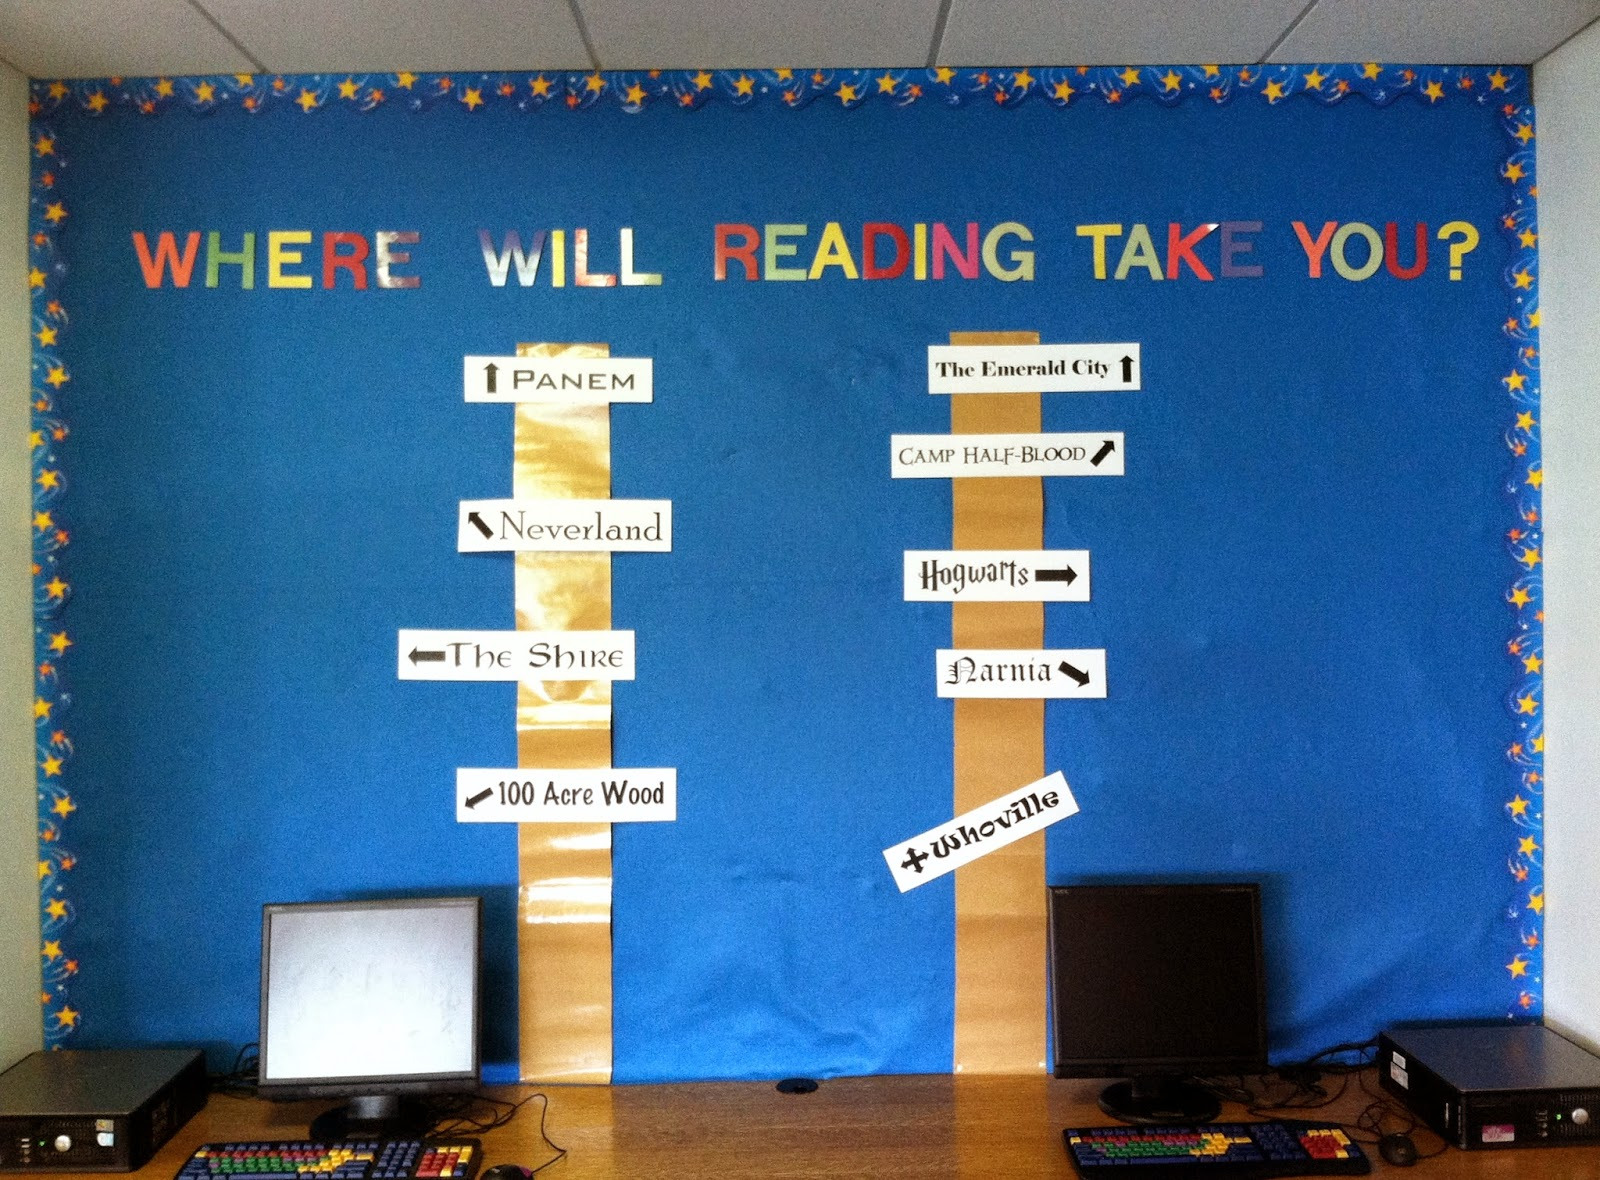 Bulletin Board: Where will reading take you?